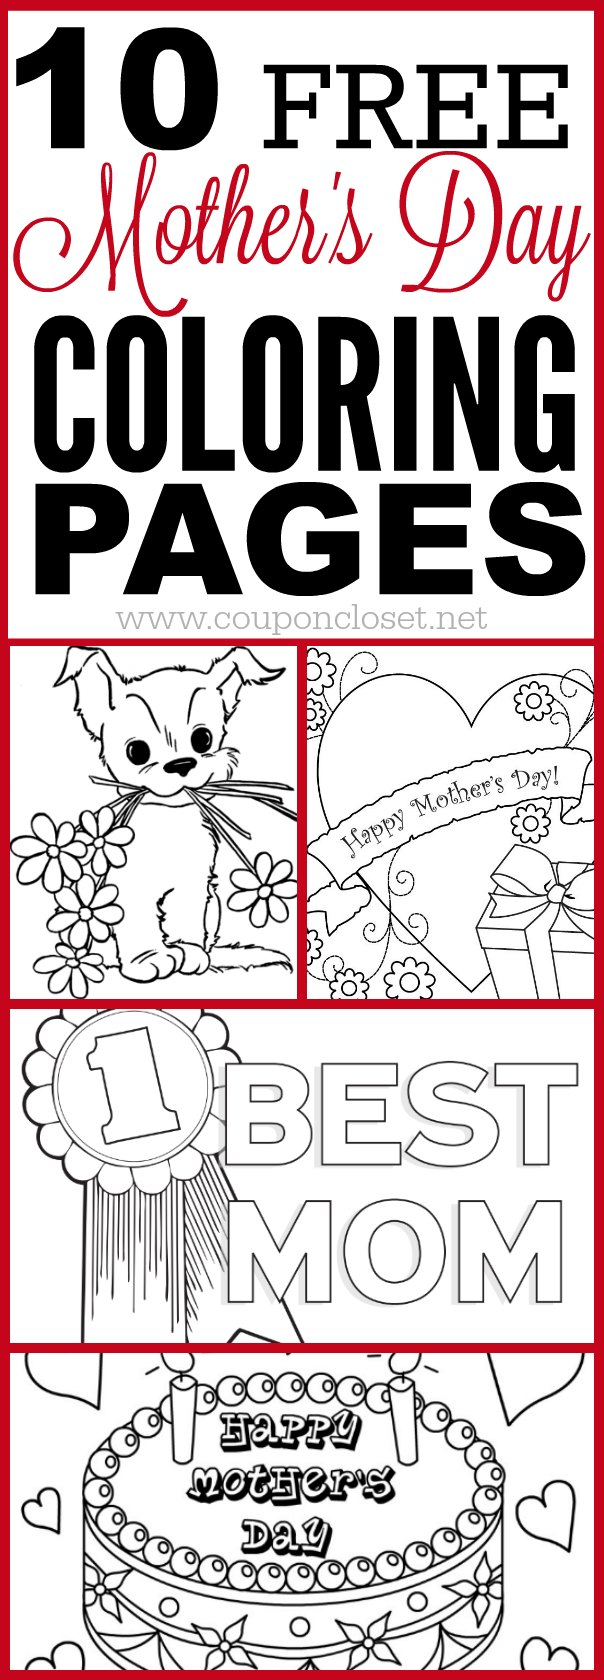 We Have A List Of Free Mothers Day Coloring Pages That The Kids Can Color  For